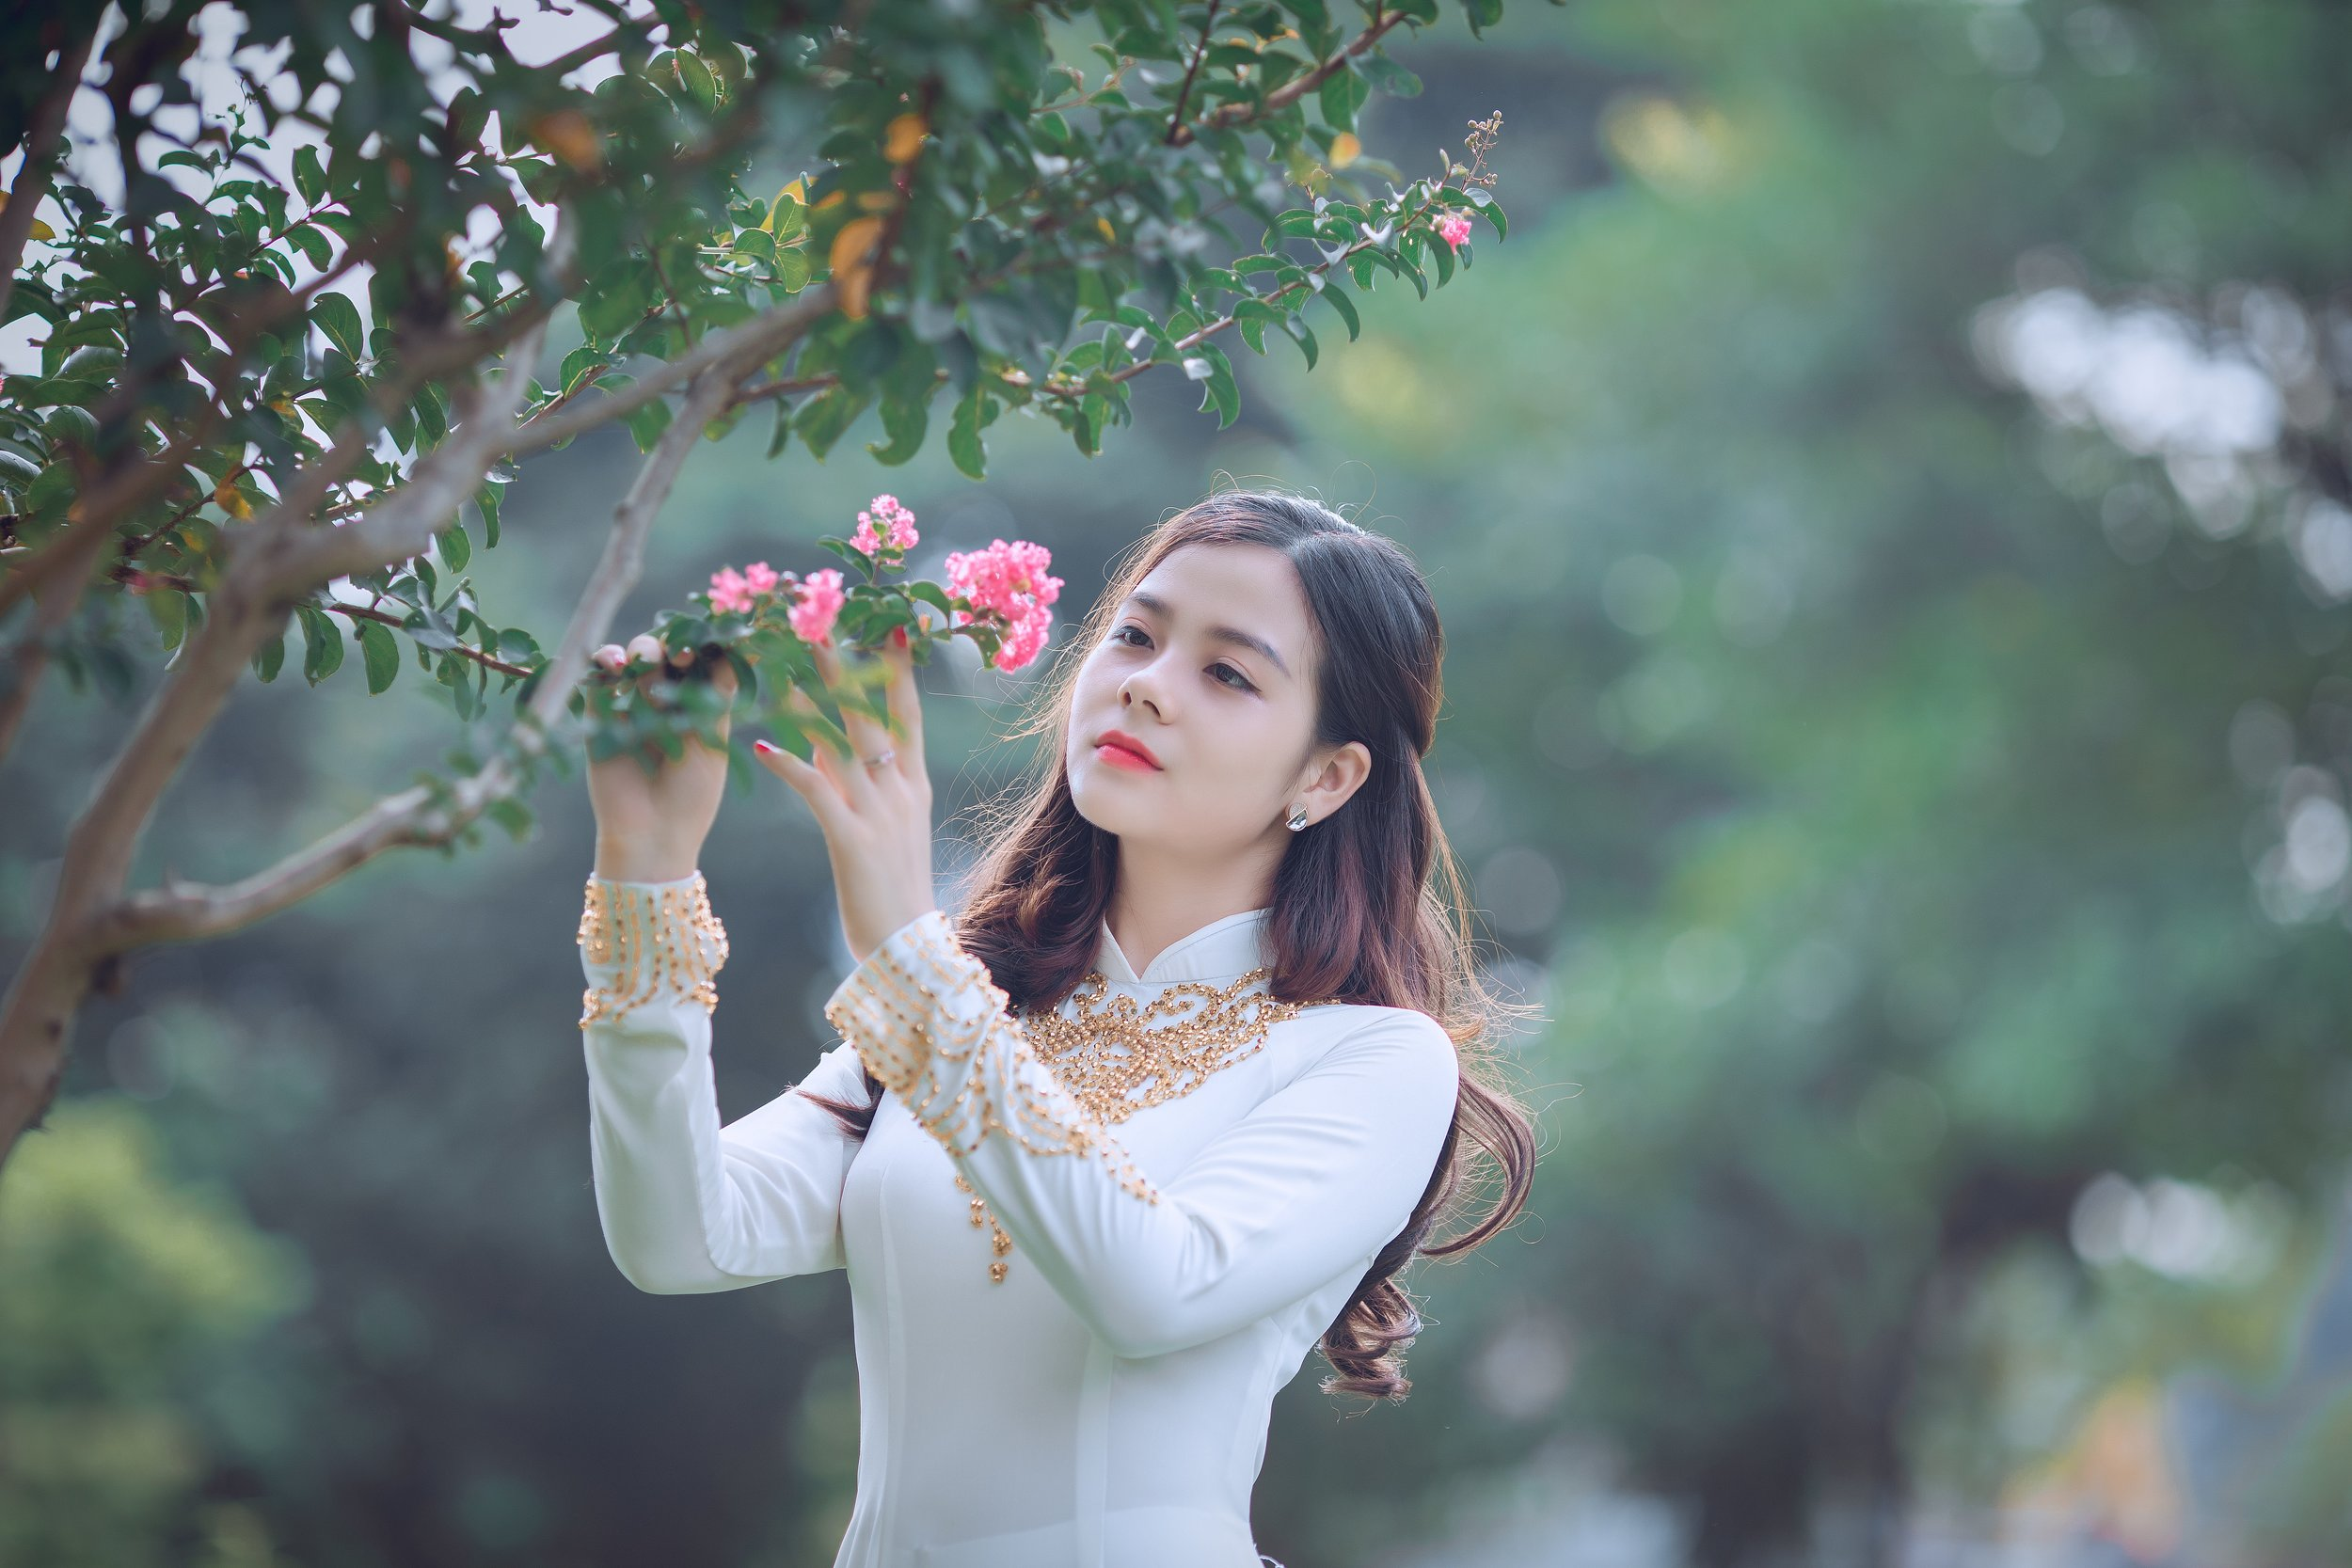 ao-dai-beautiful-beauty-1308881.jpg